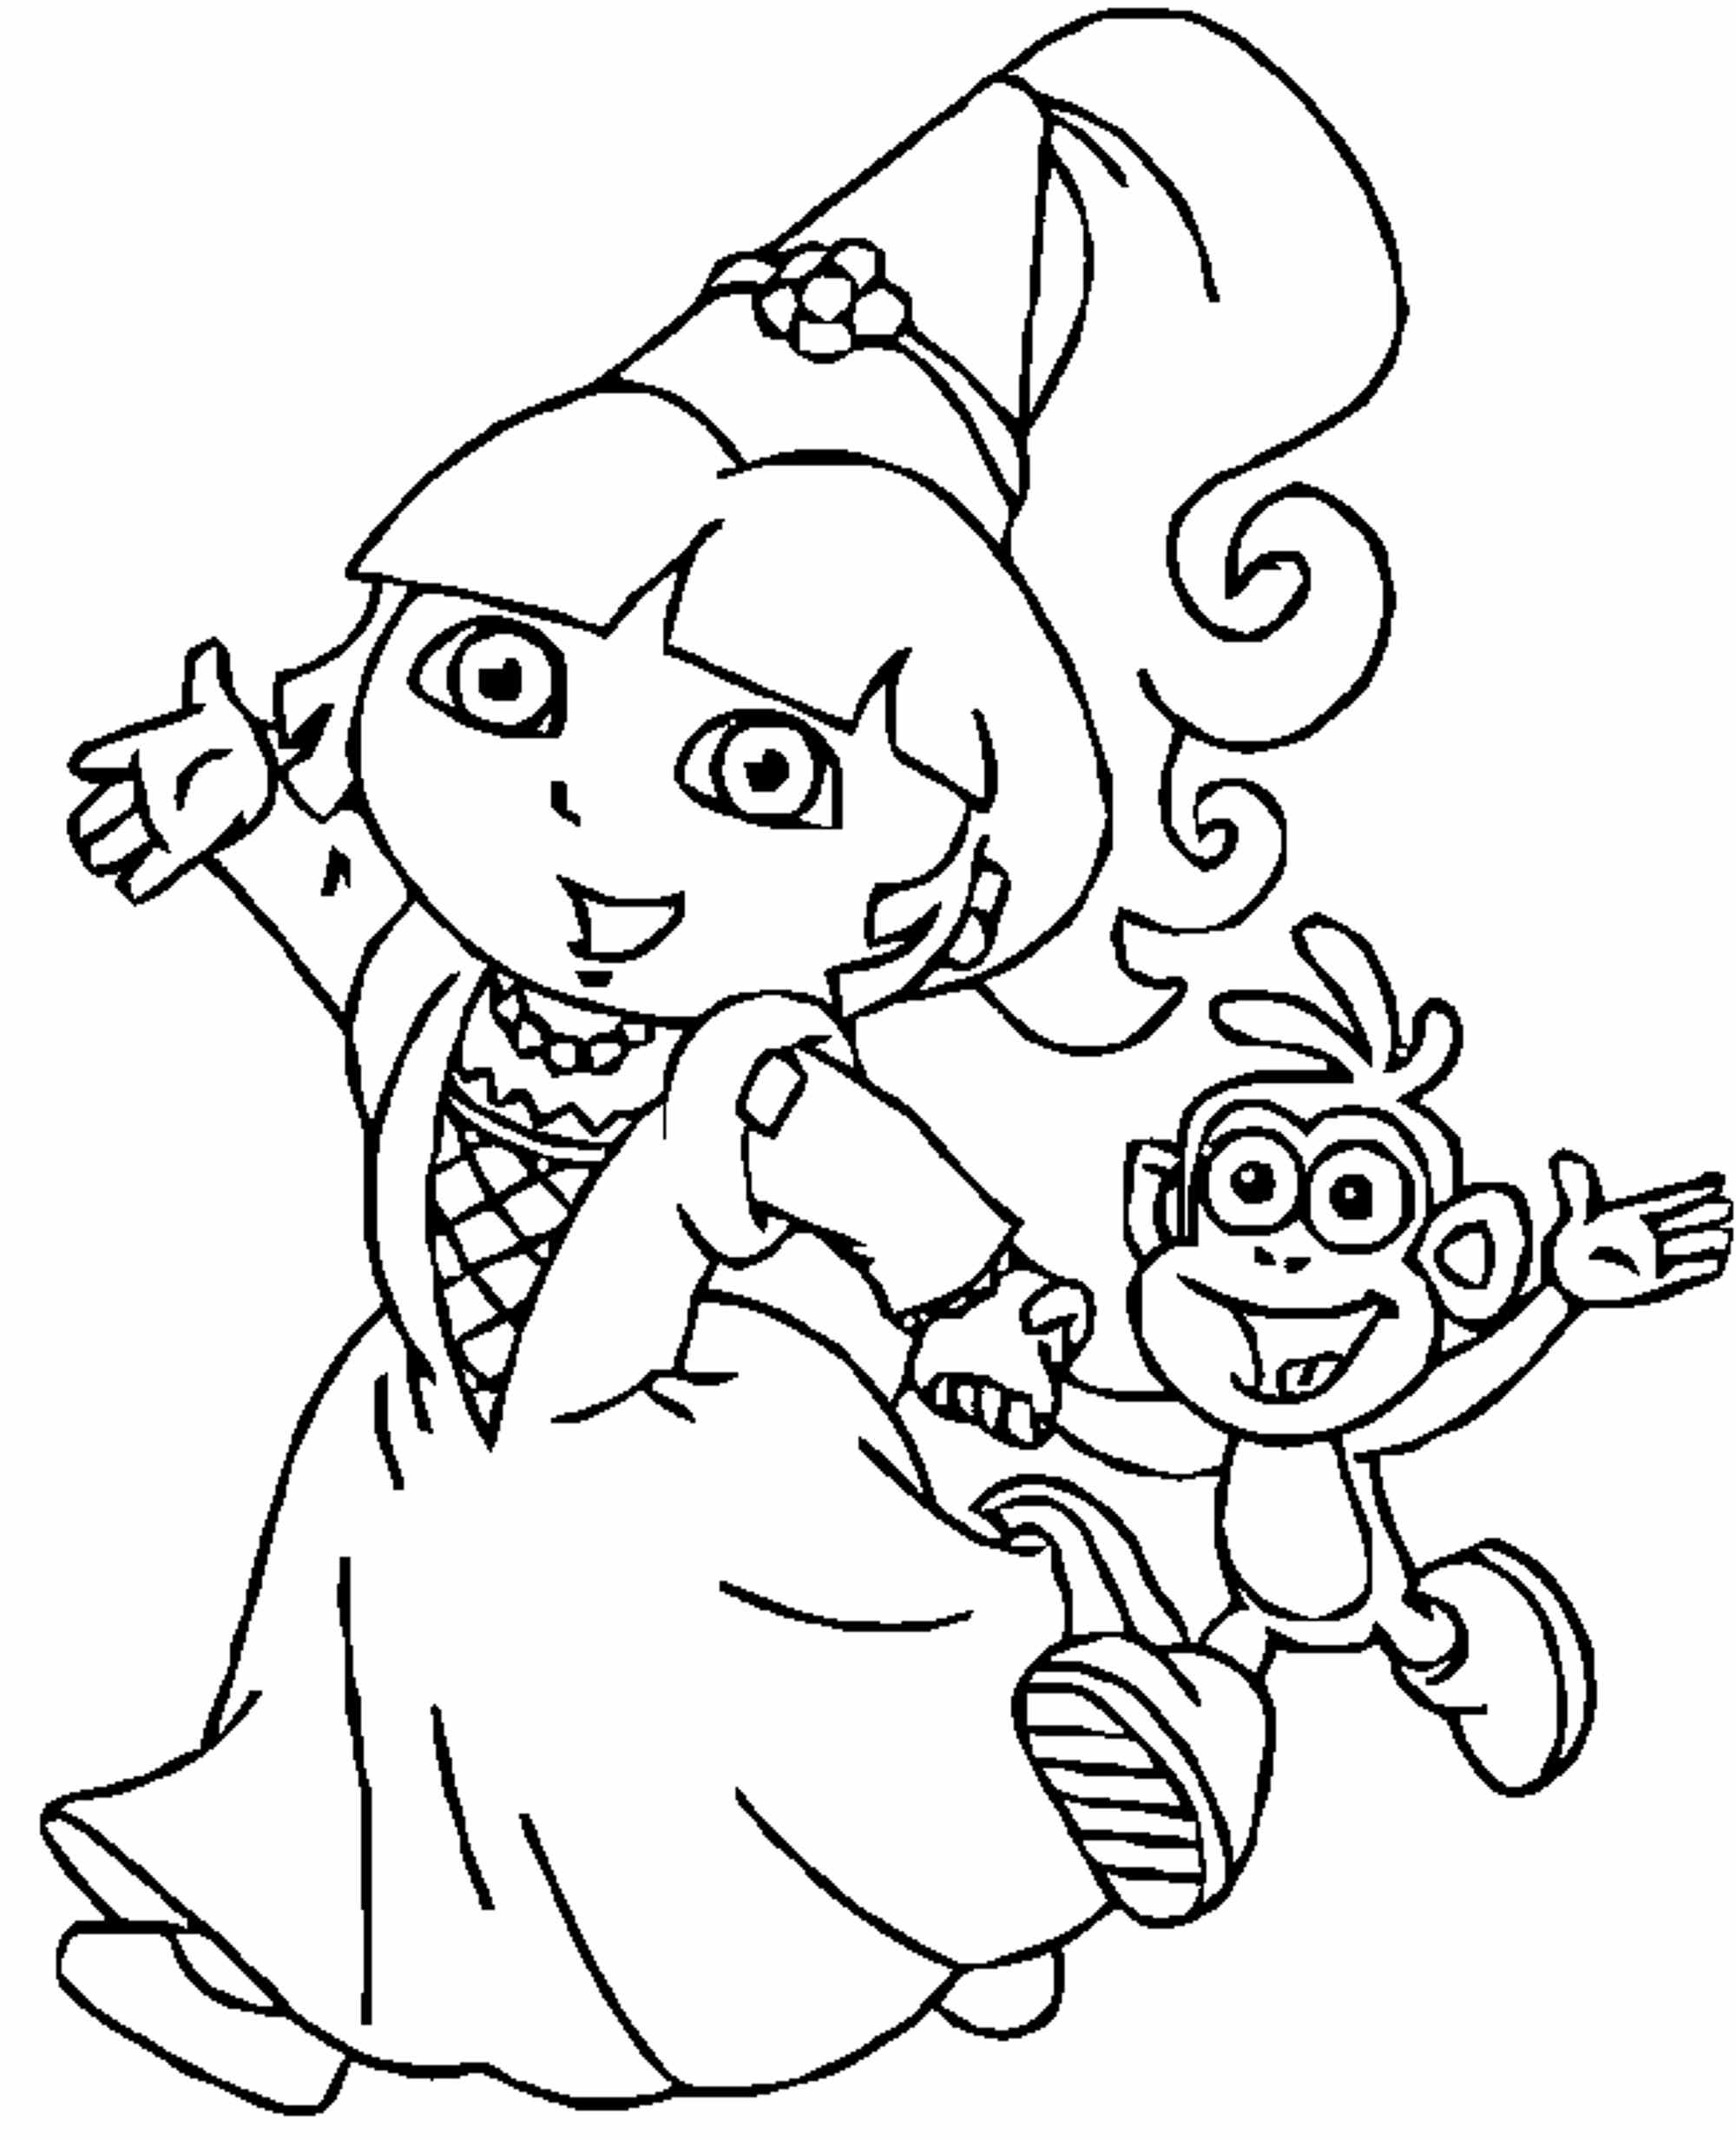 dora pictures to color and print dora colouring pictures coloring pages to print dora pictures to print and color